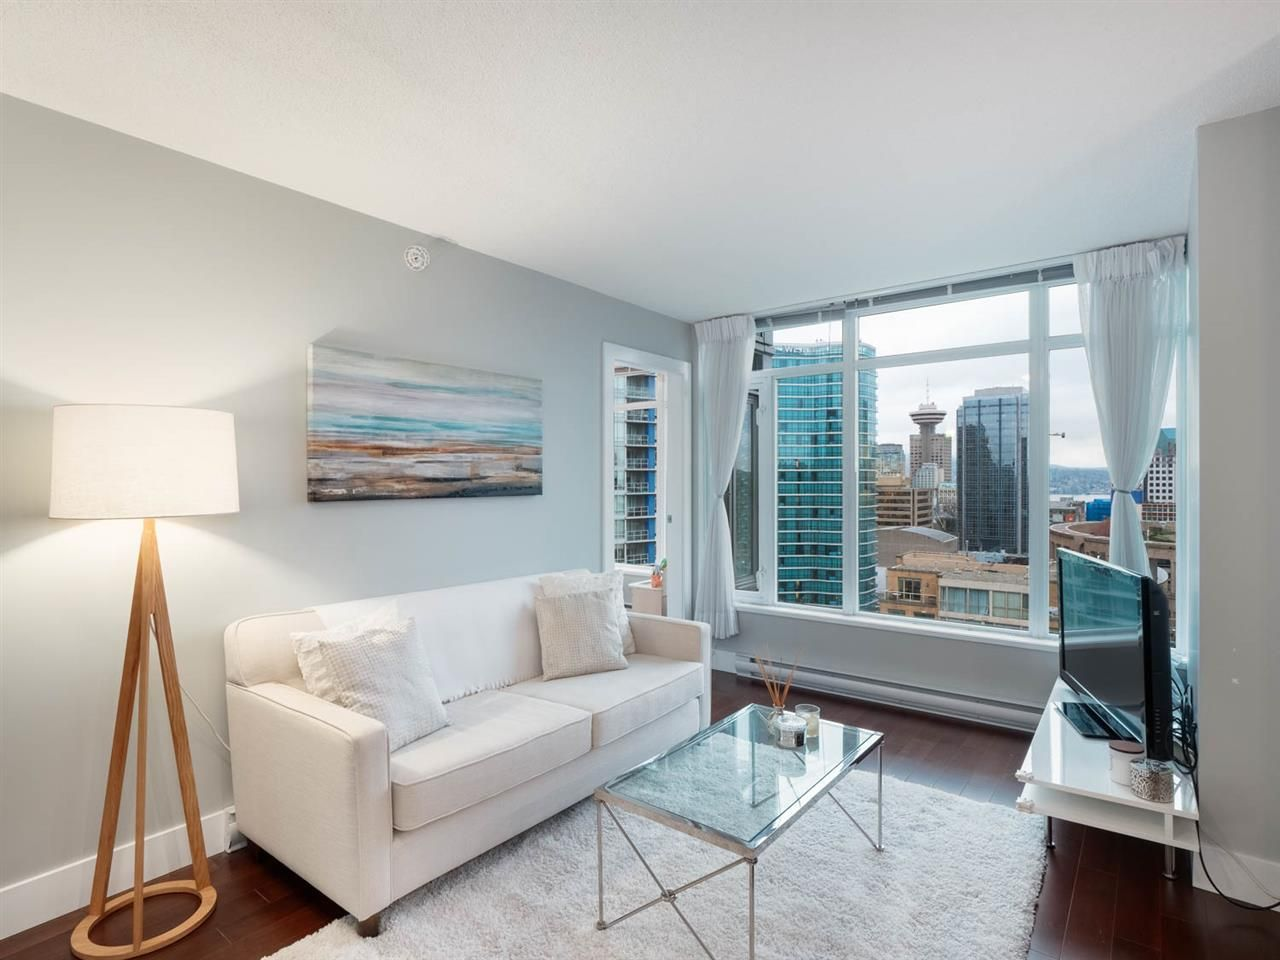 Main Photo: 2304 888 HOMER STREET in Vancouver: Downtown VW Condo for sale (Vancouver West)  : MLS®# R2330895